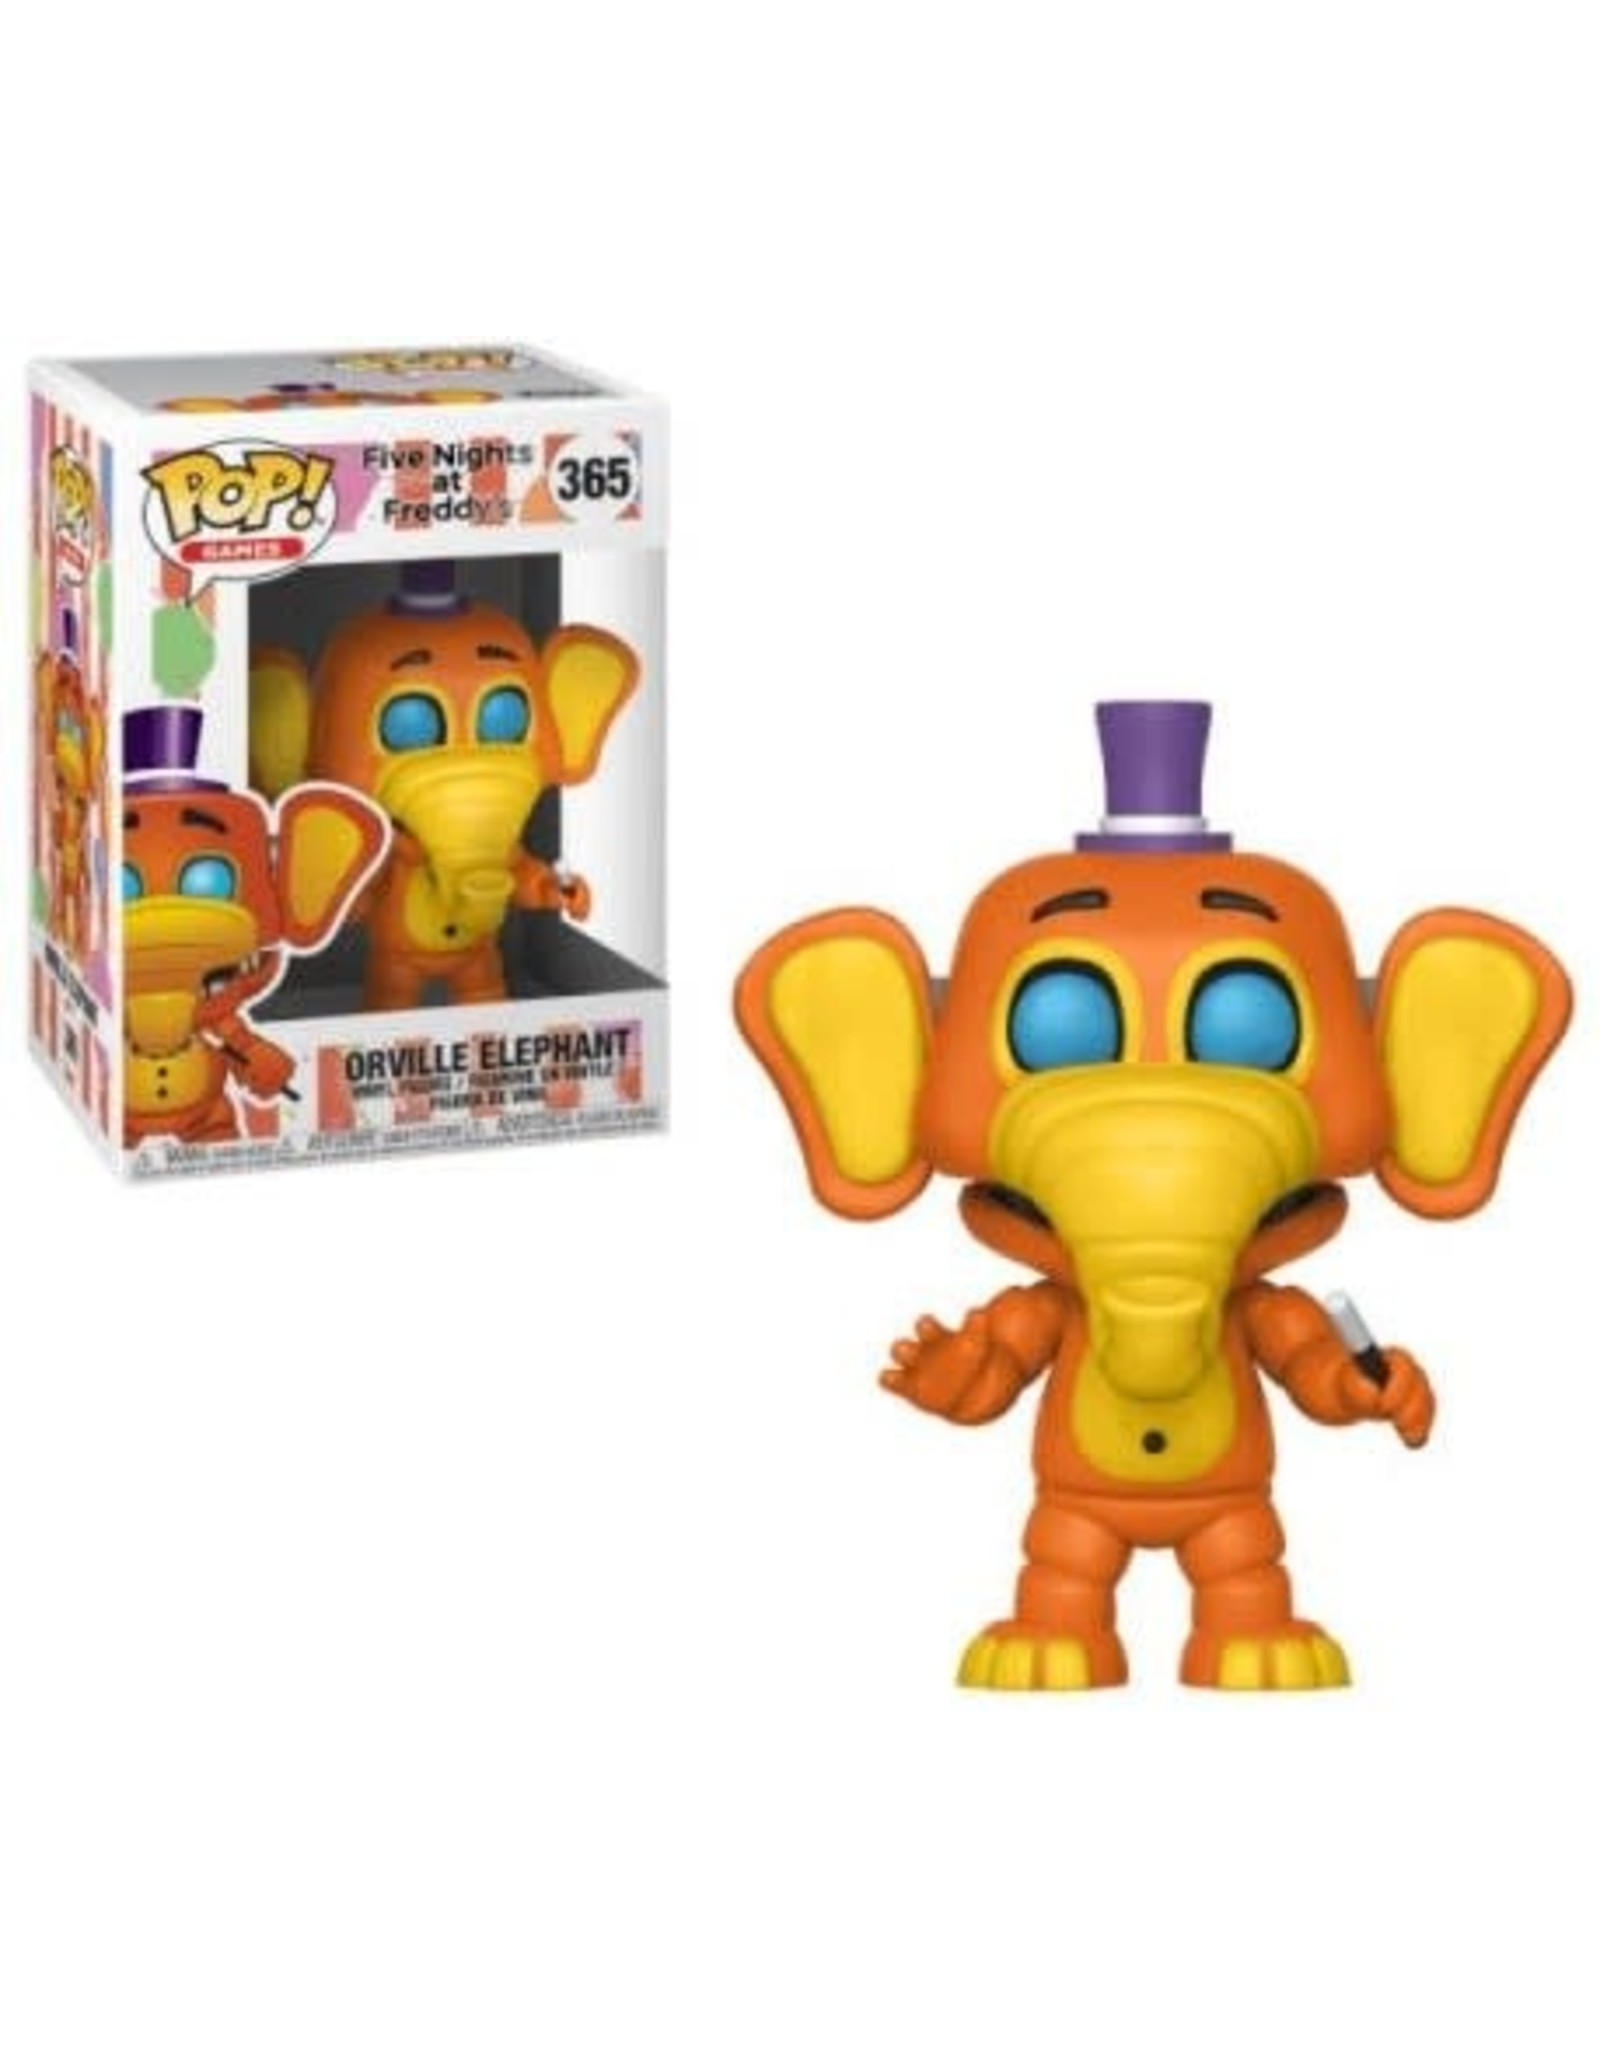 Funko Pop! Funko Pop! Games nr365 Five Nights at Freddy's - Orville Elephant